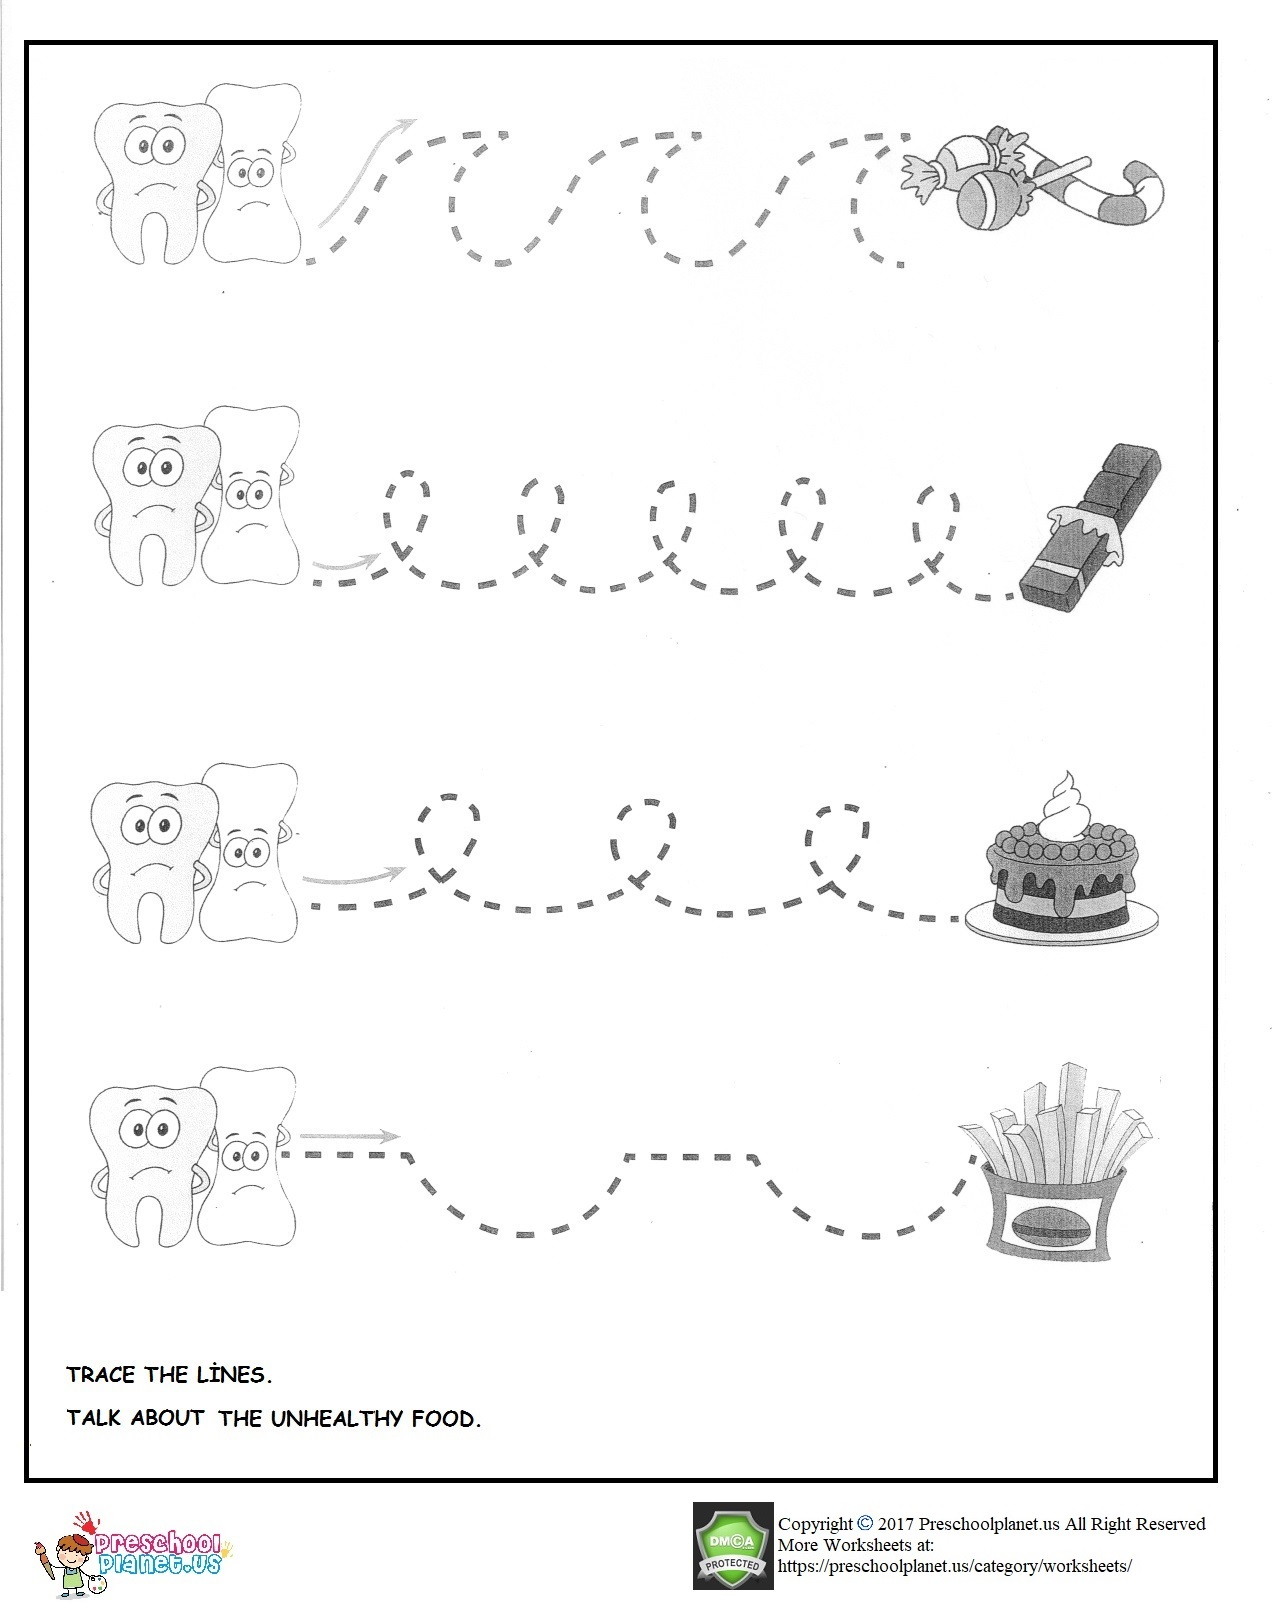 Dental Health Week Worksheet For Preschool Preschoolplanet